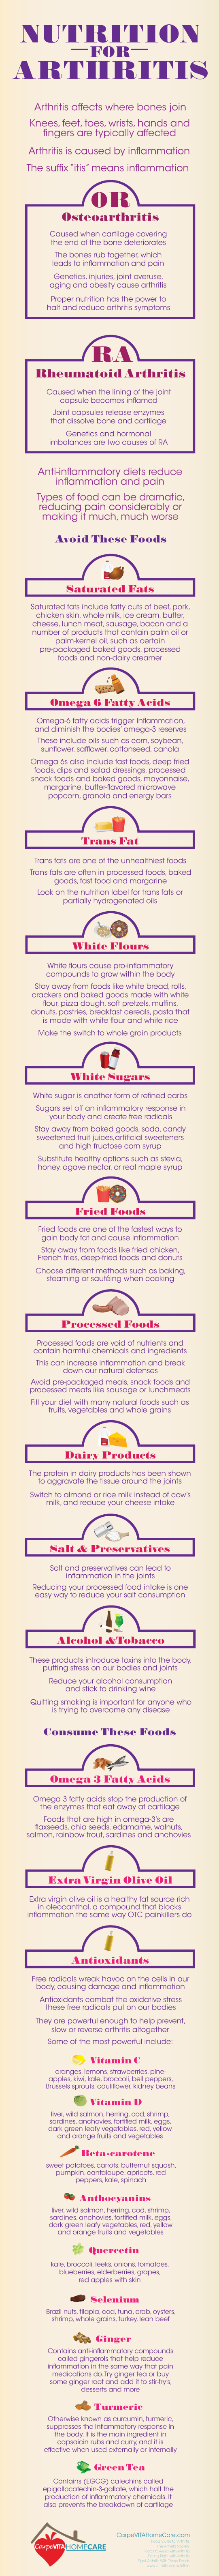 Infographic-Nutrition-For-Arthritis